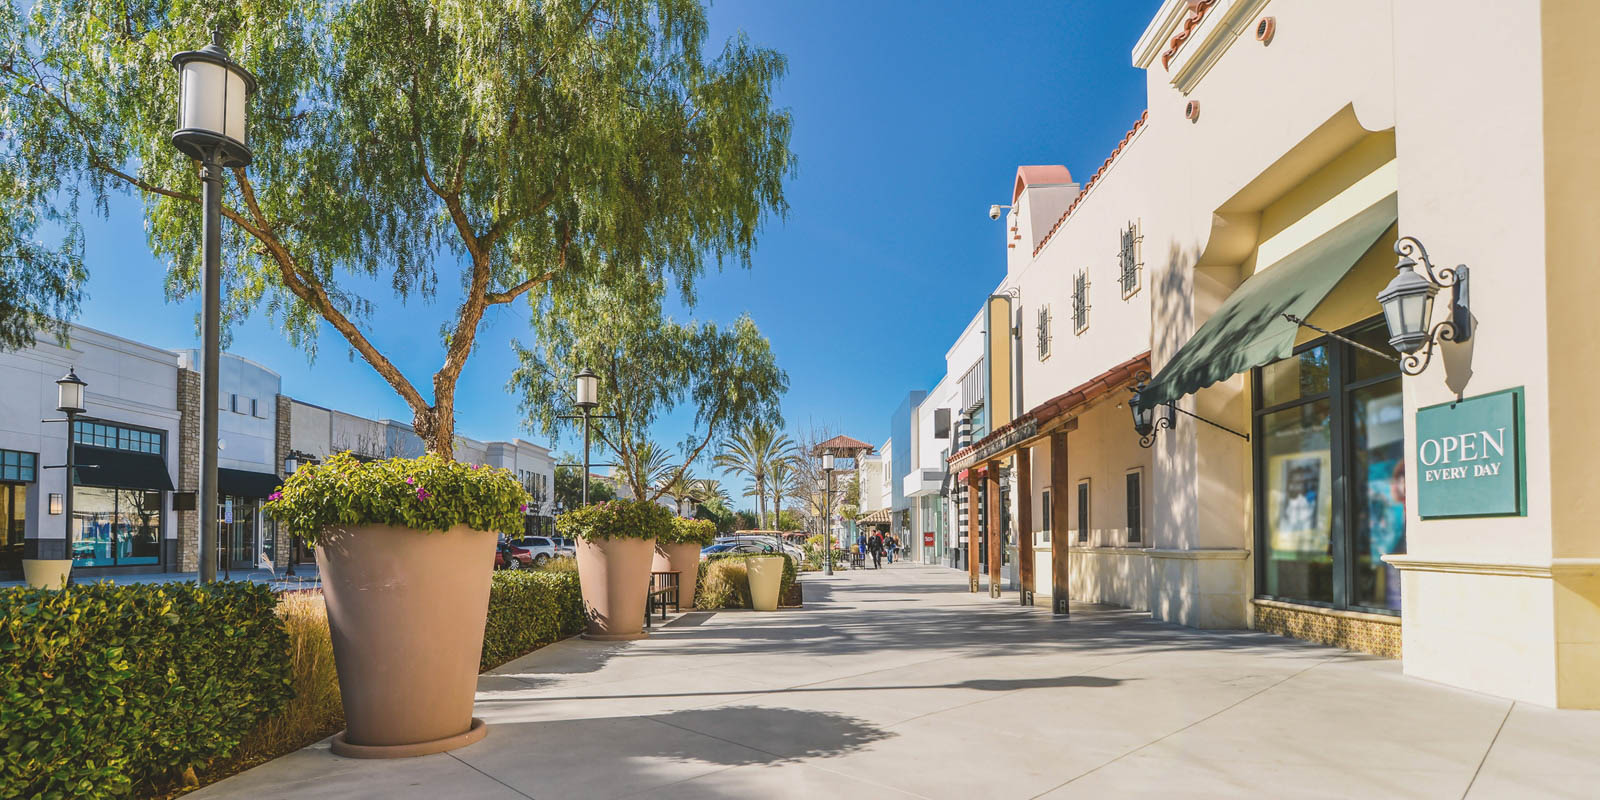 Shopping District in Solano County